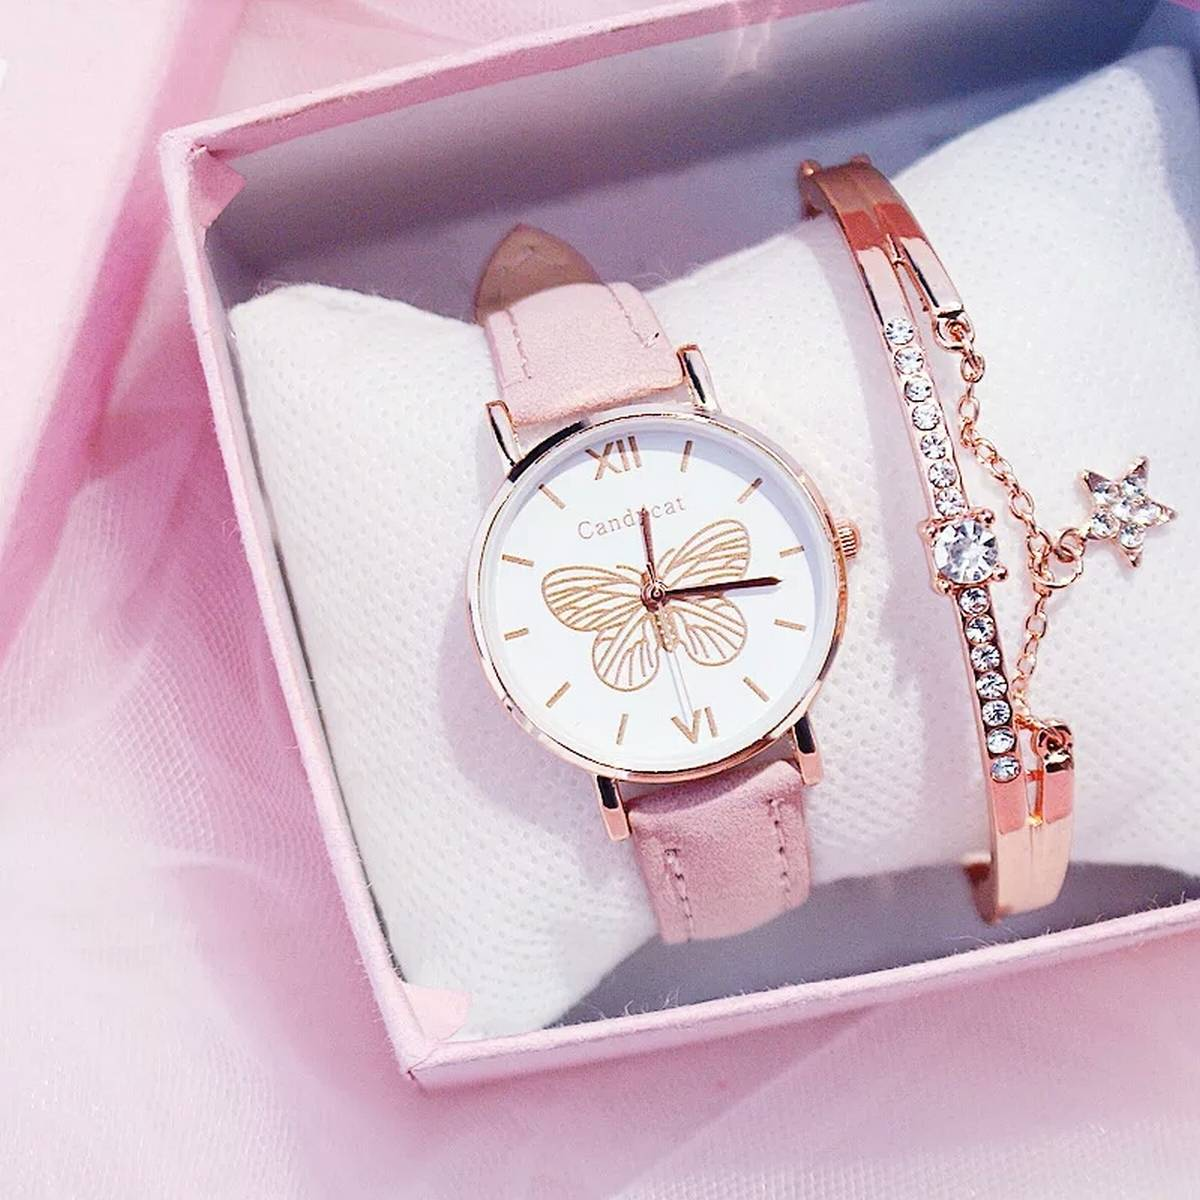 Beautiful Watch For Women In high Quality 2020 Luxury Watch For Girls With Free Box ( Only Watch and Box )